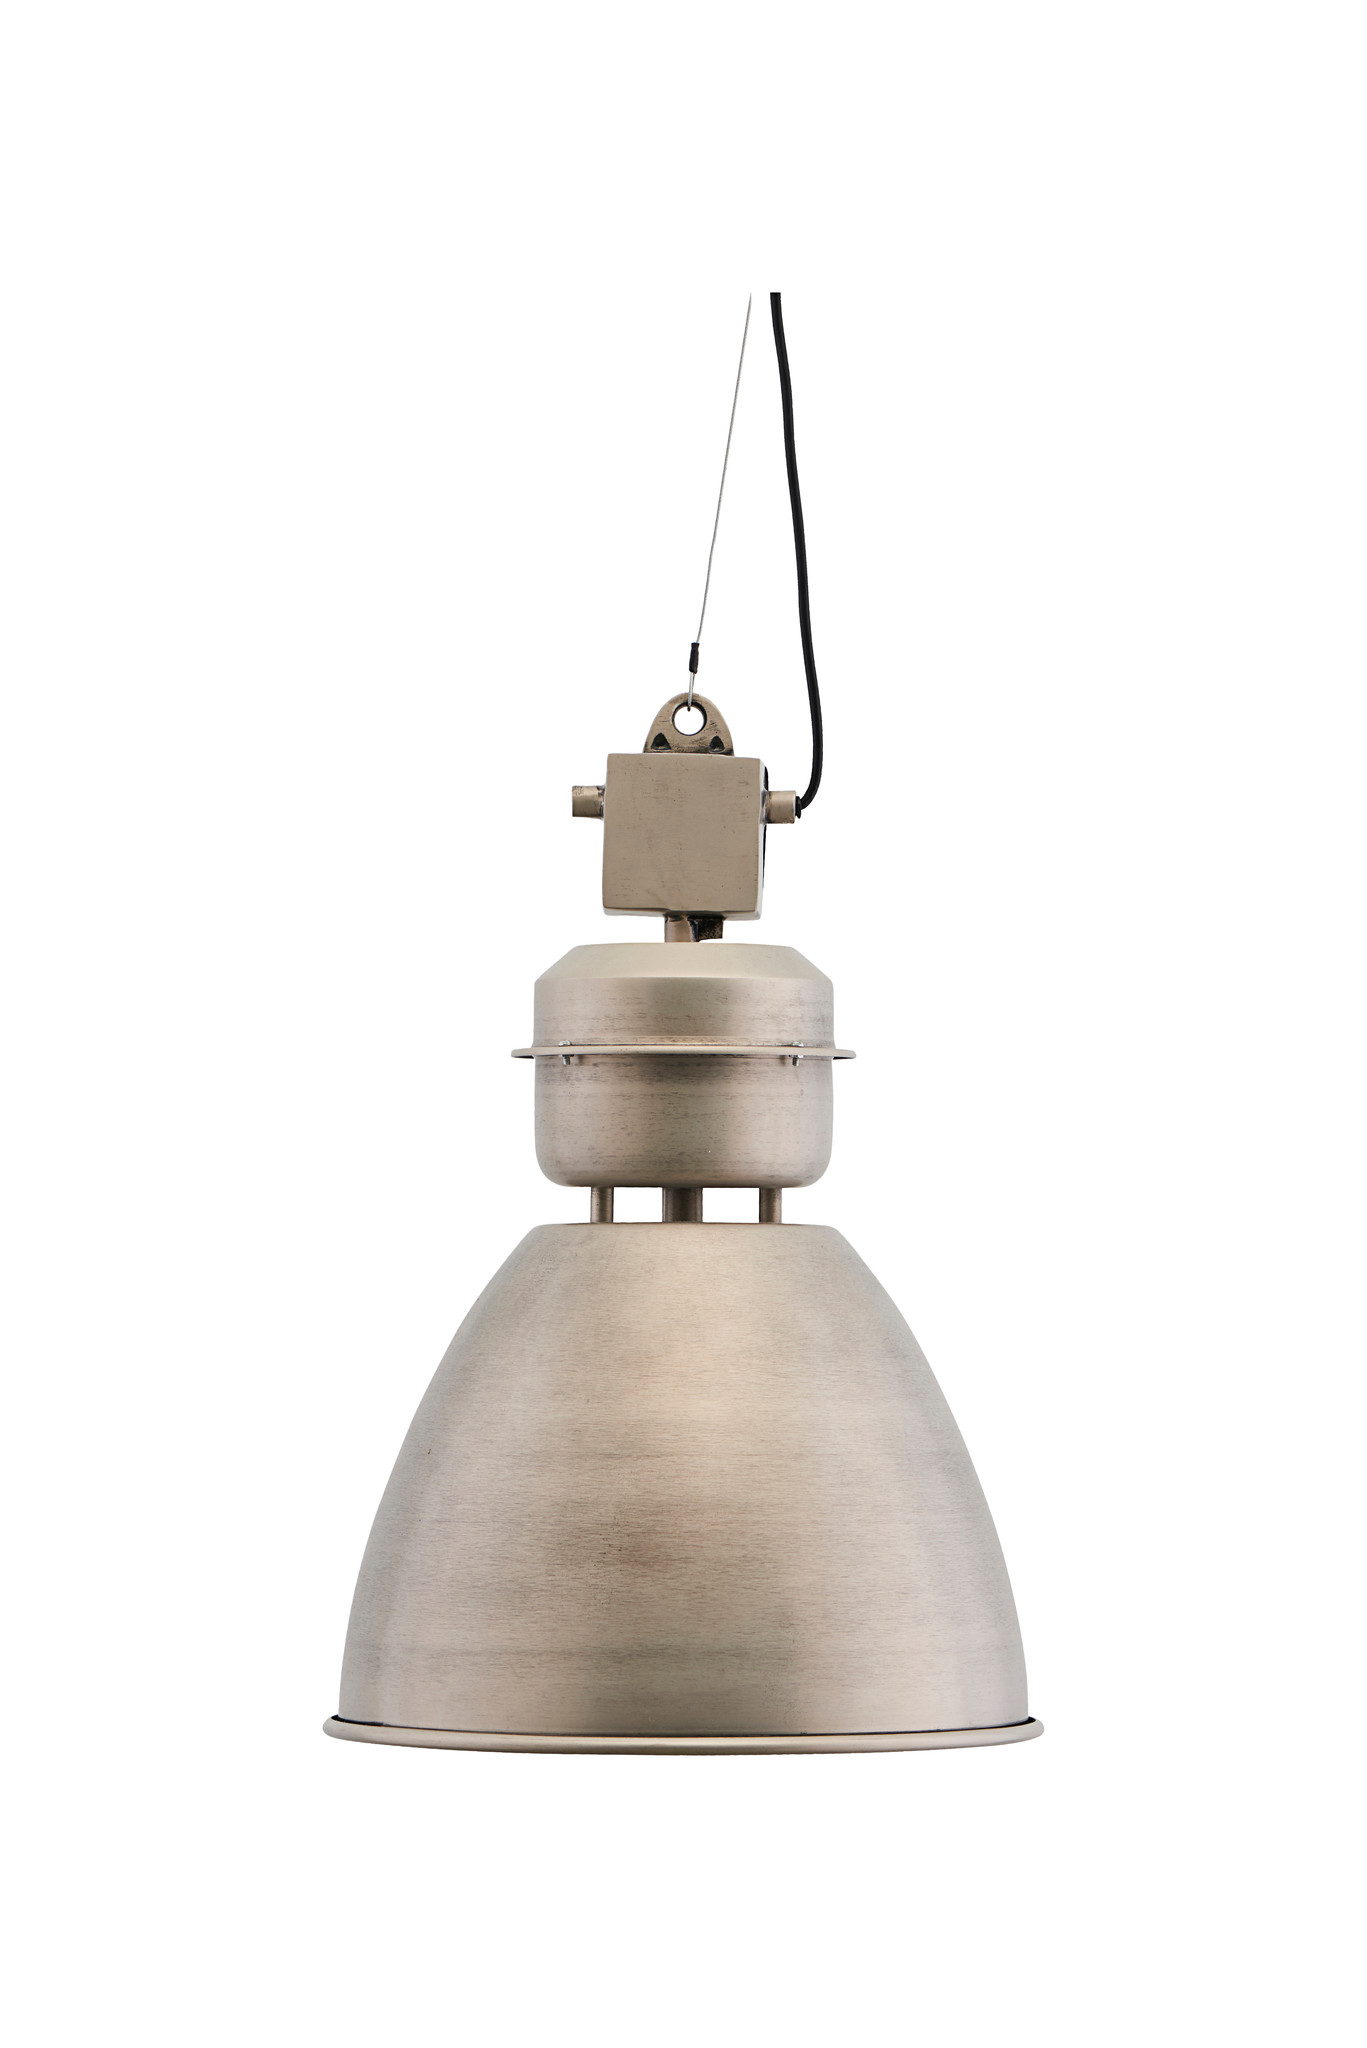 House Doctor lamp 'Warehouse' XL rustic - Ø35xh52cm - House Doctor